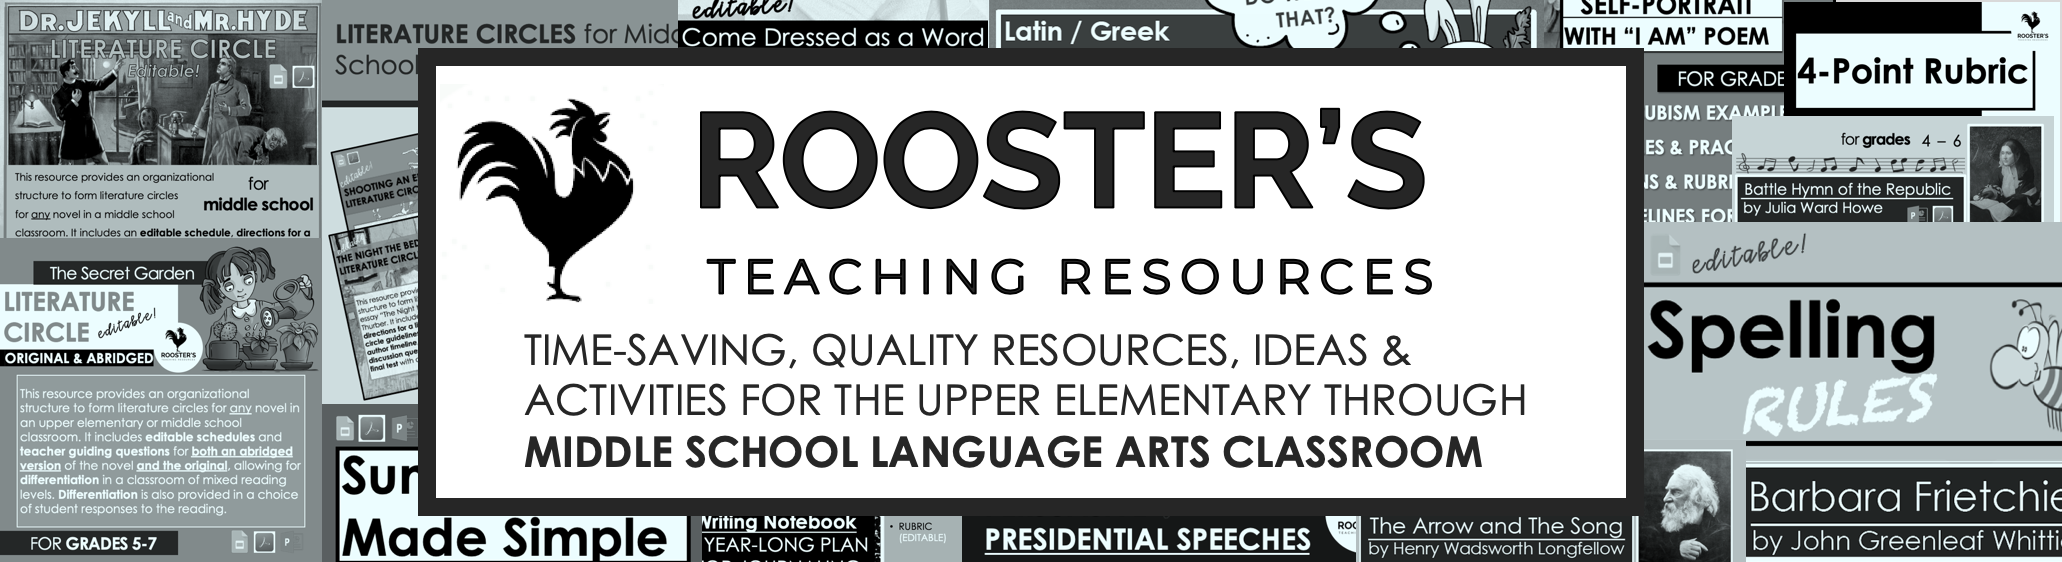 roosters-teaching-resources